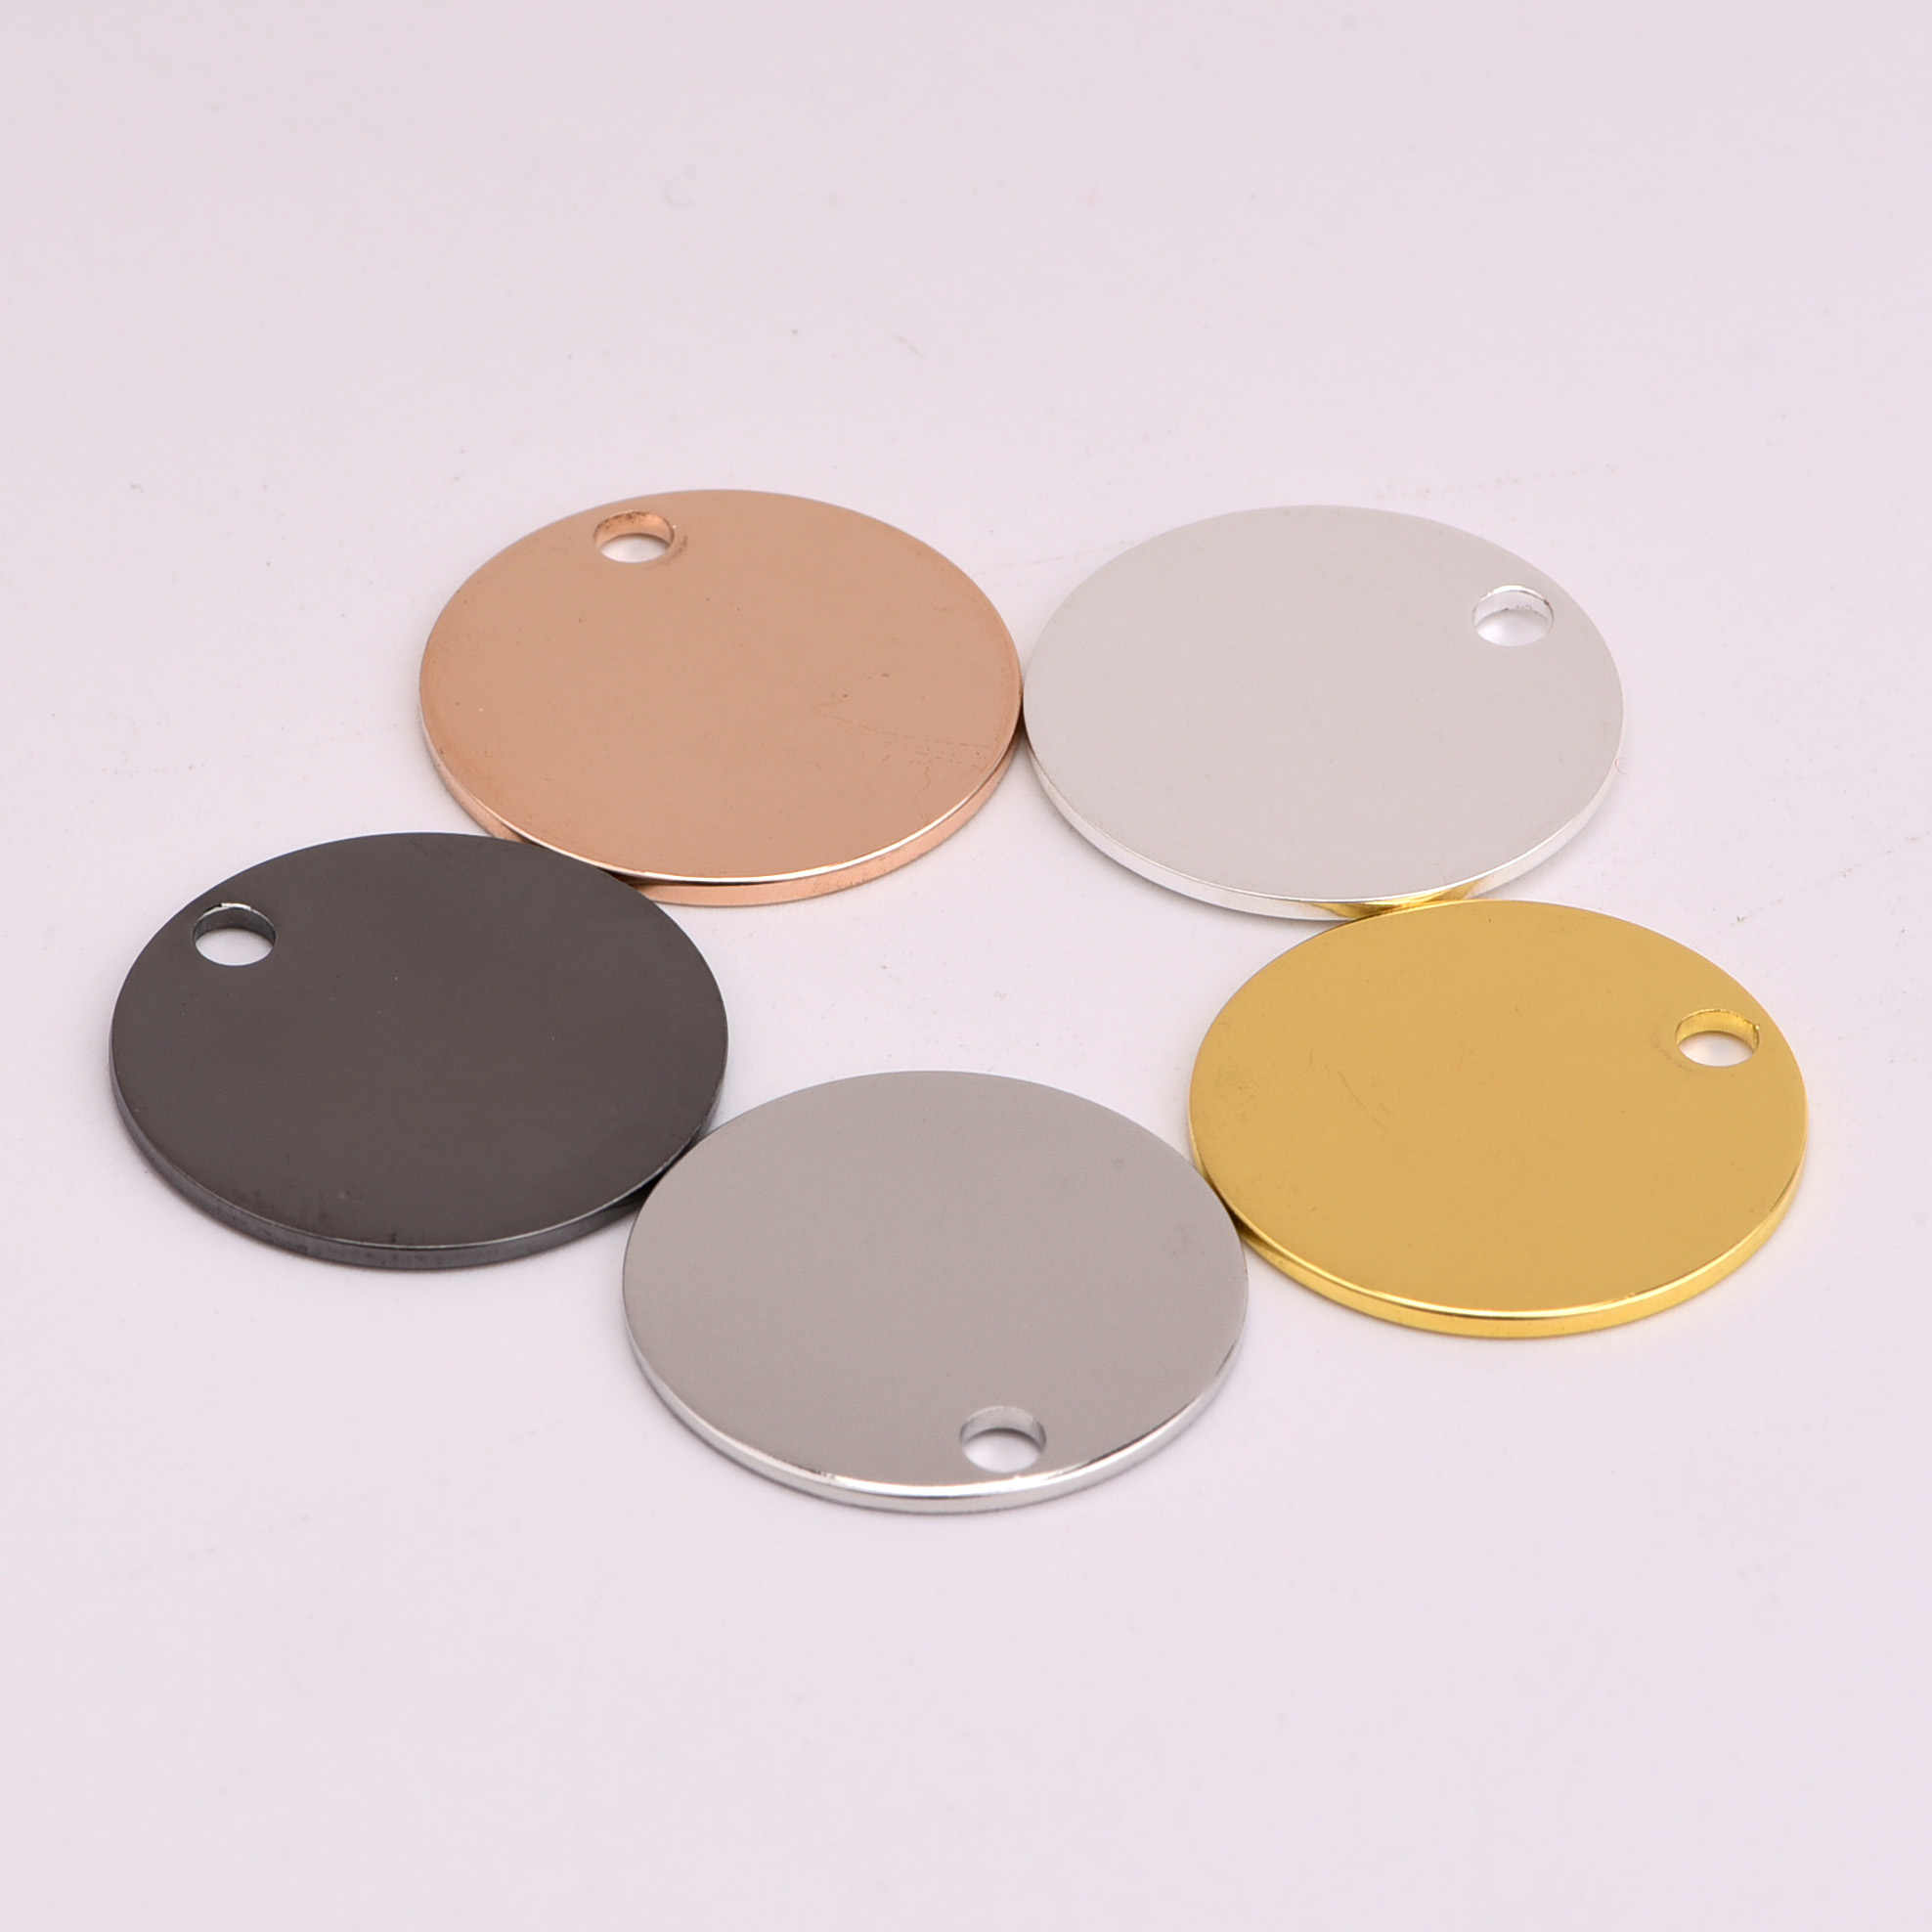 20mm 5pcs copper Round tag charms Plate round cake shape pendant fit ornamentation Vintage DIY for bracelet necklace